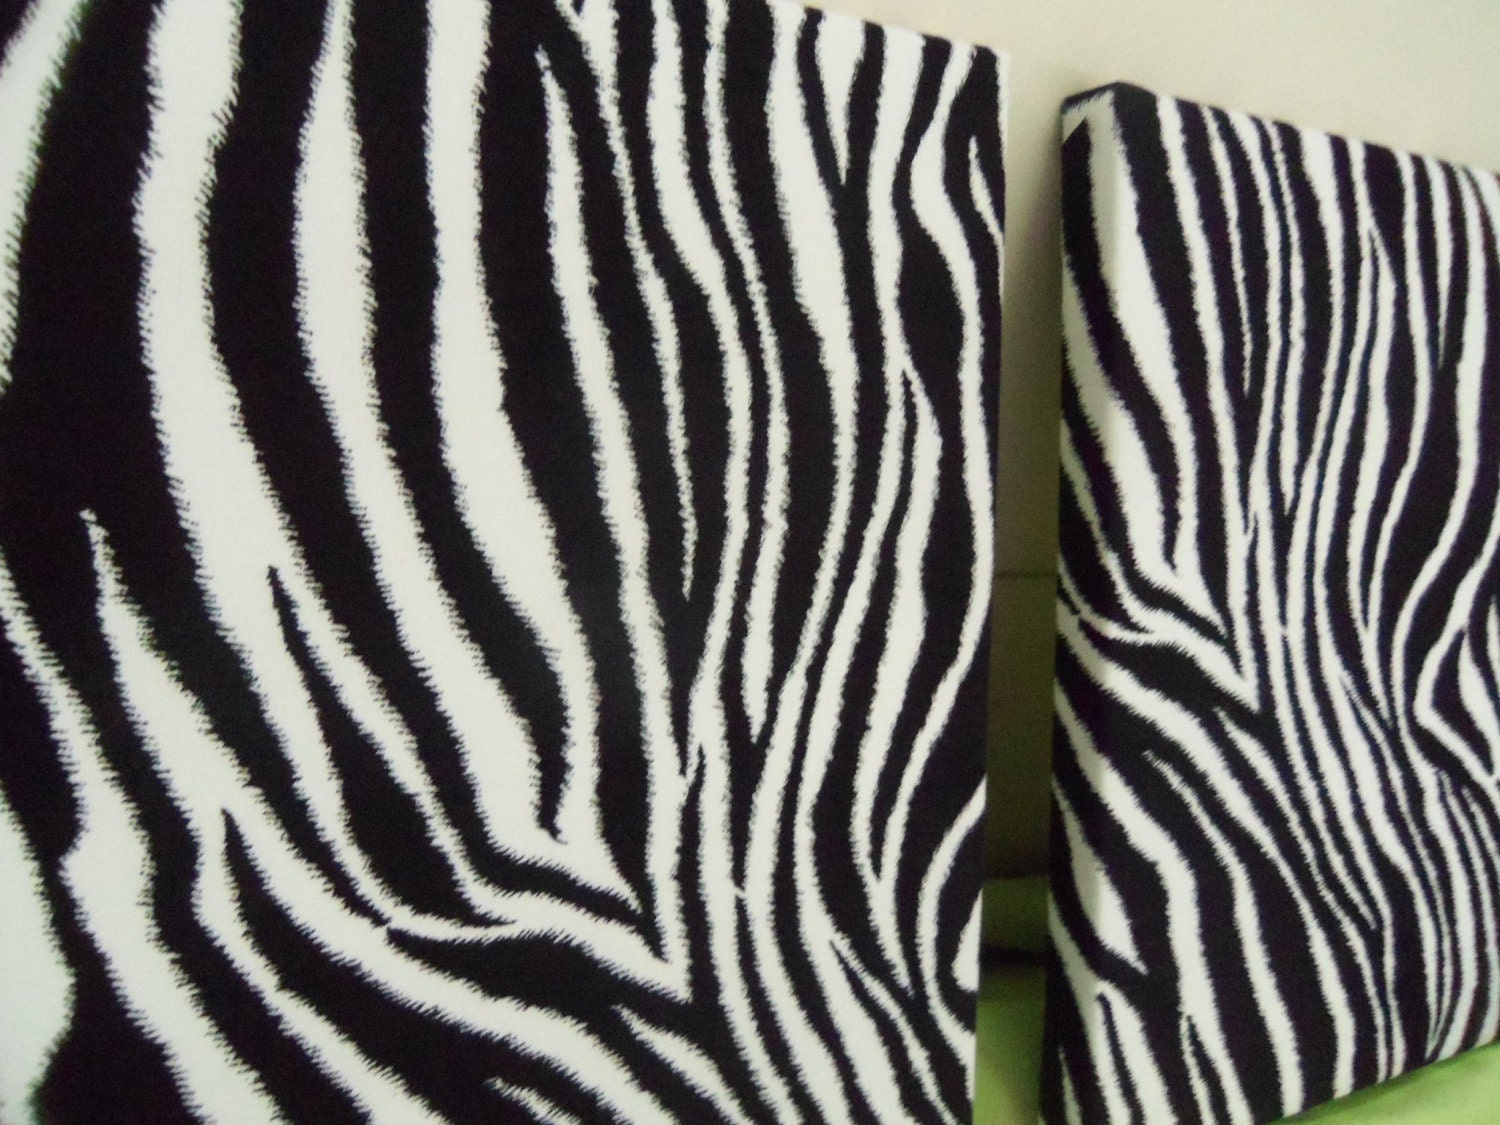 Zebra Stripes Wall Decor : Zebra striped fabric wall decor set by anyhuedesignsbypam